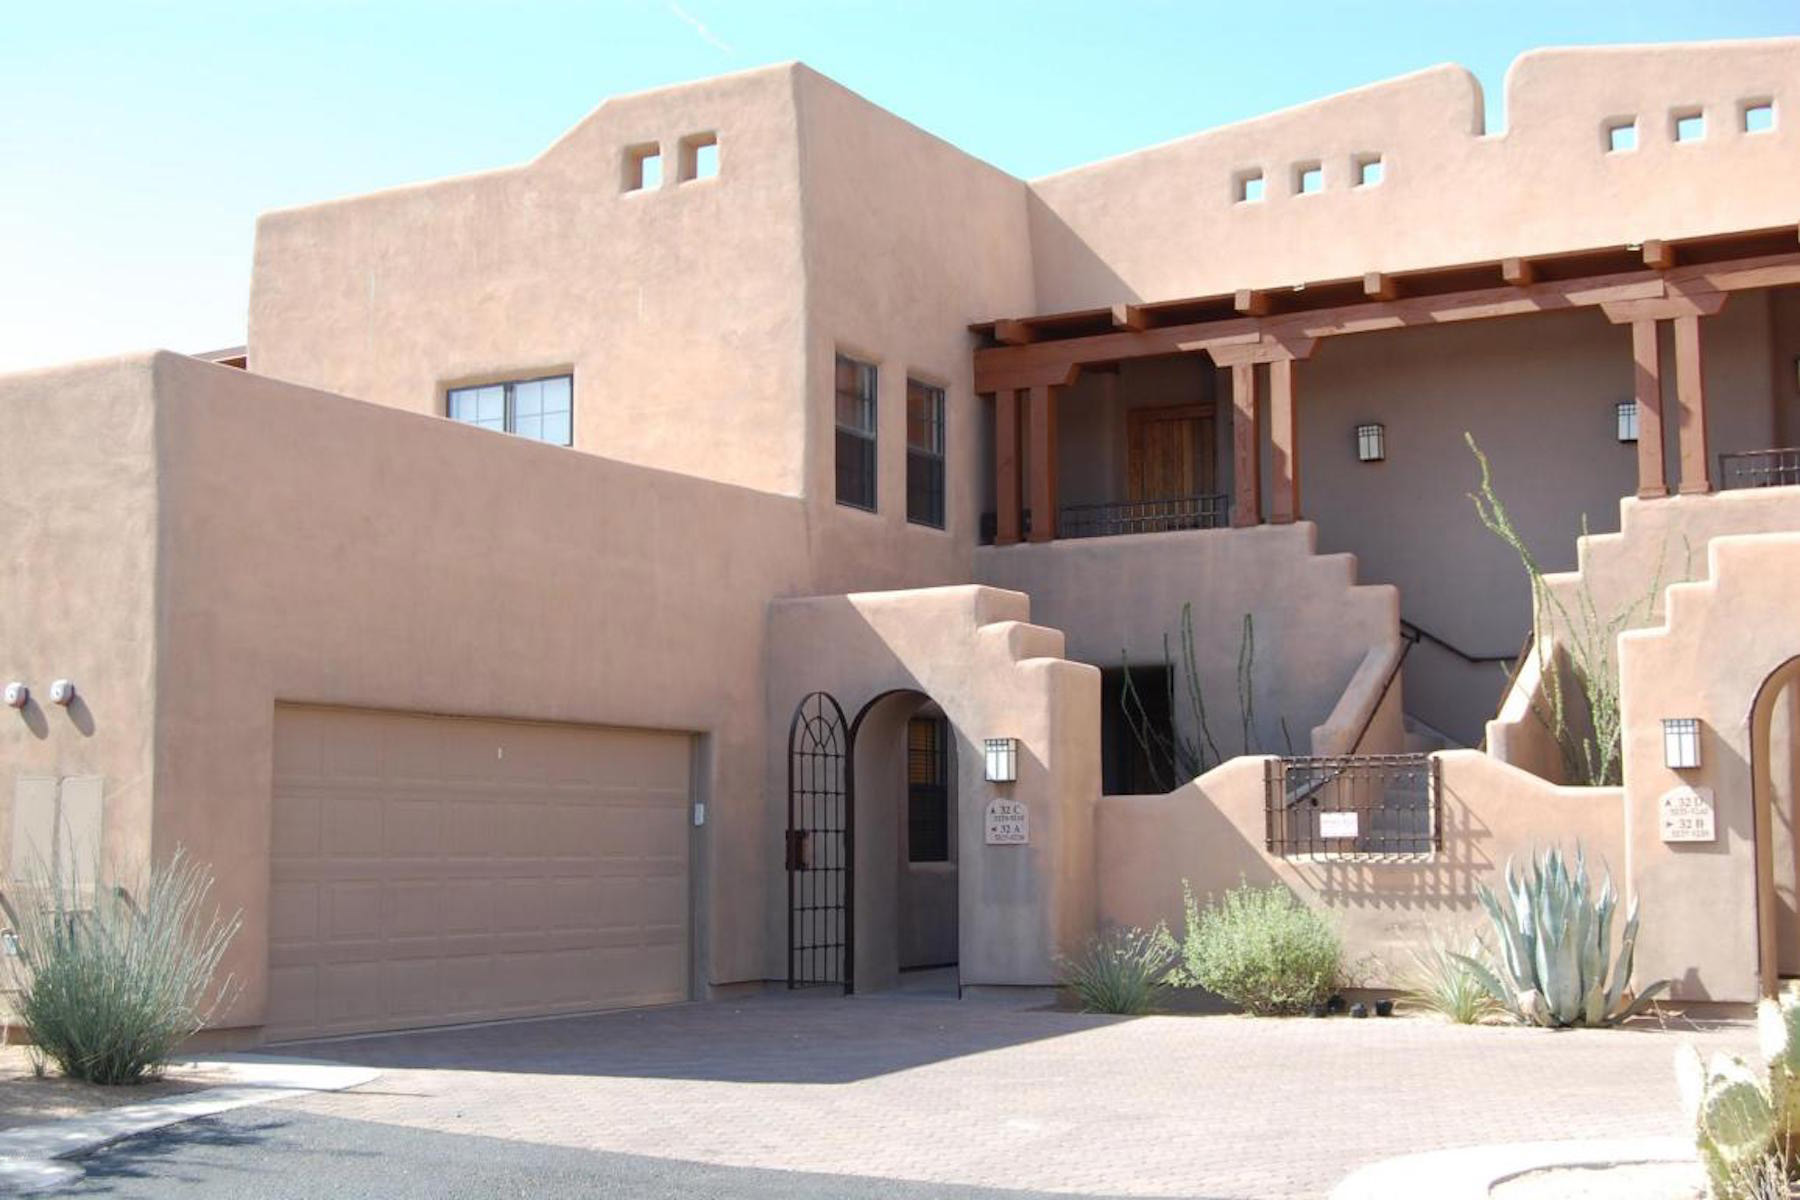 Townhouse for Sale at Fully furnished gated community with wonderful mountain views. 36601 N Mule Train Rd 26 Carefree, Arizona, 85377 United States